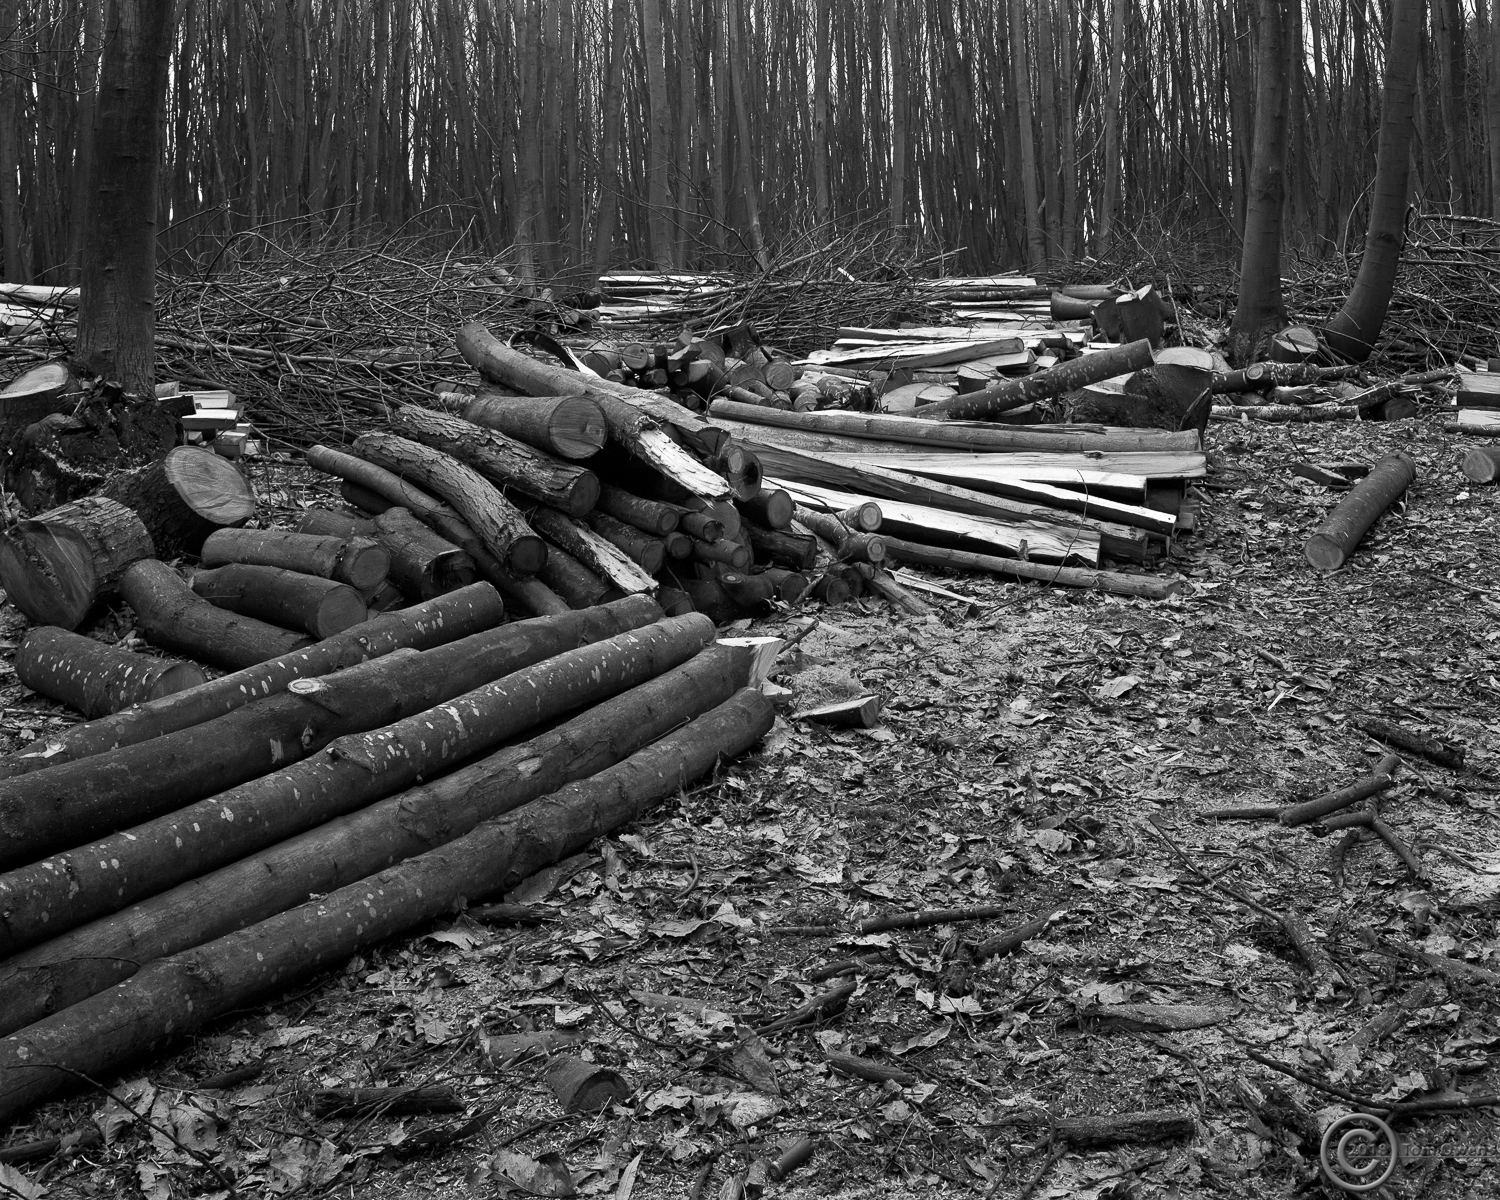 Prepared chestnut coppicing with spend shotgun cartridge in foreground